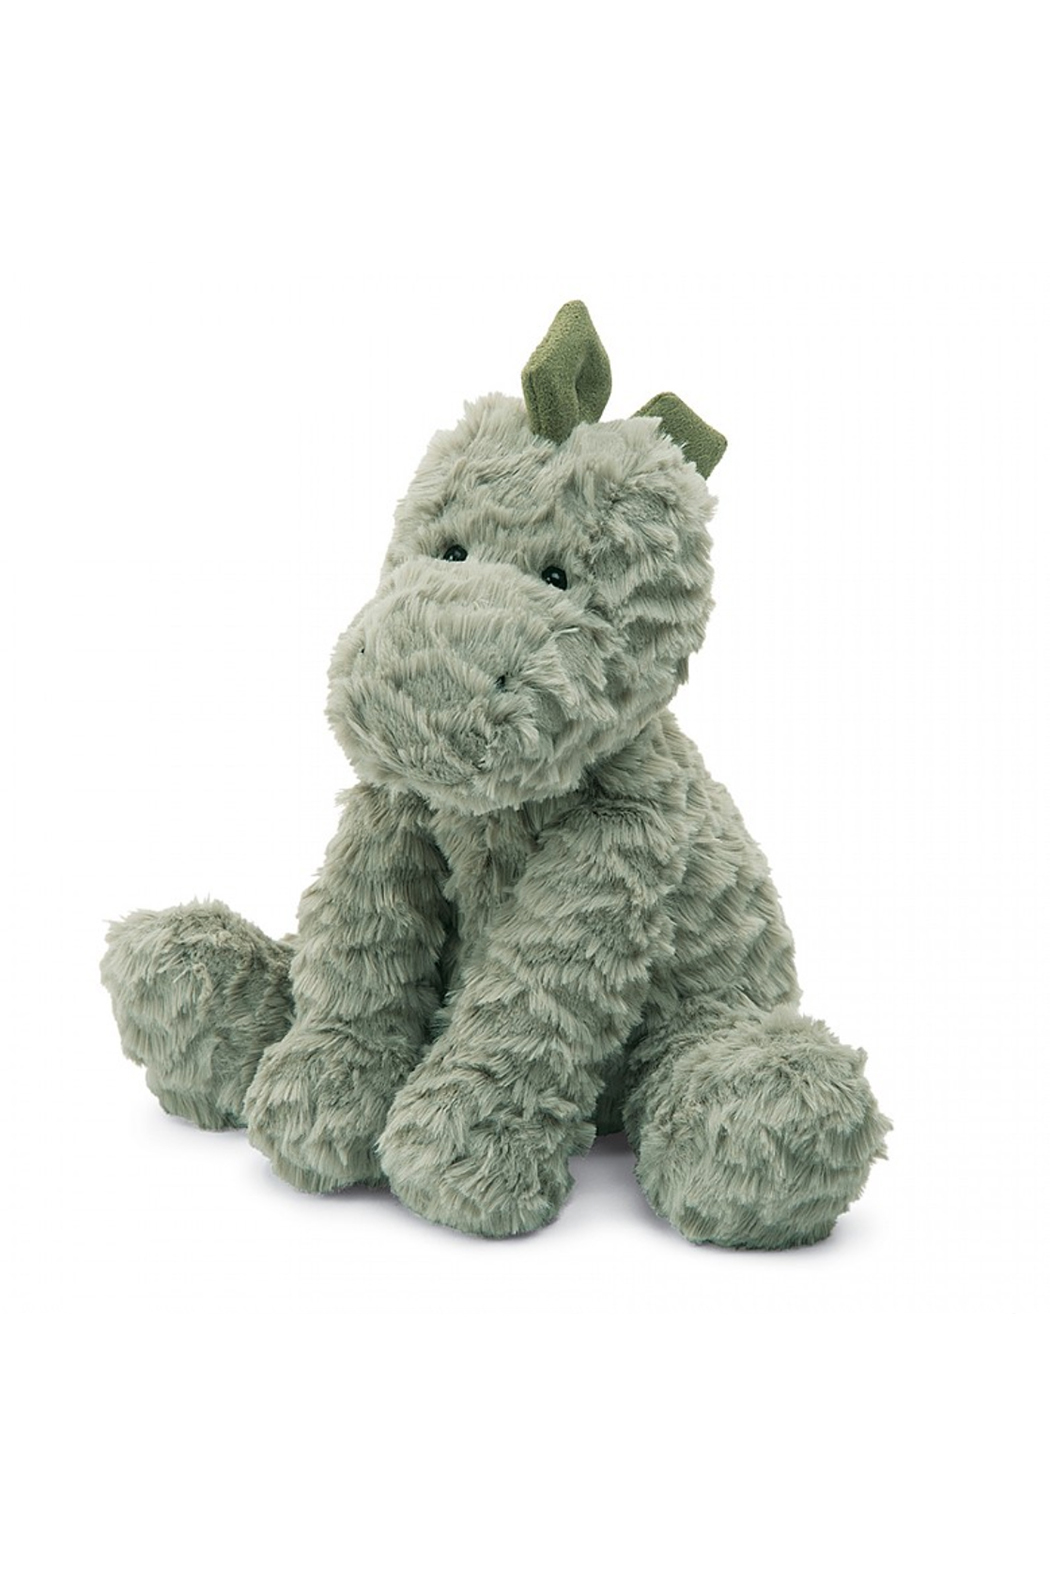 Jellycat Fuddlewuddle Dino Medium - Main Image